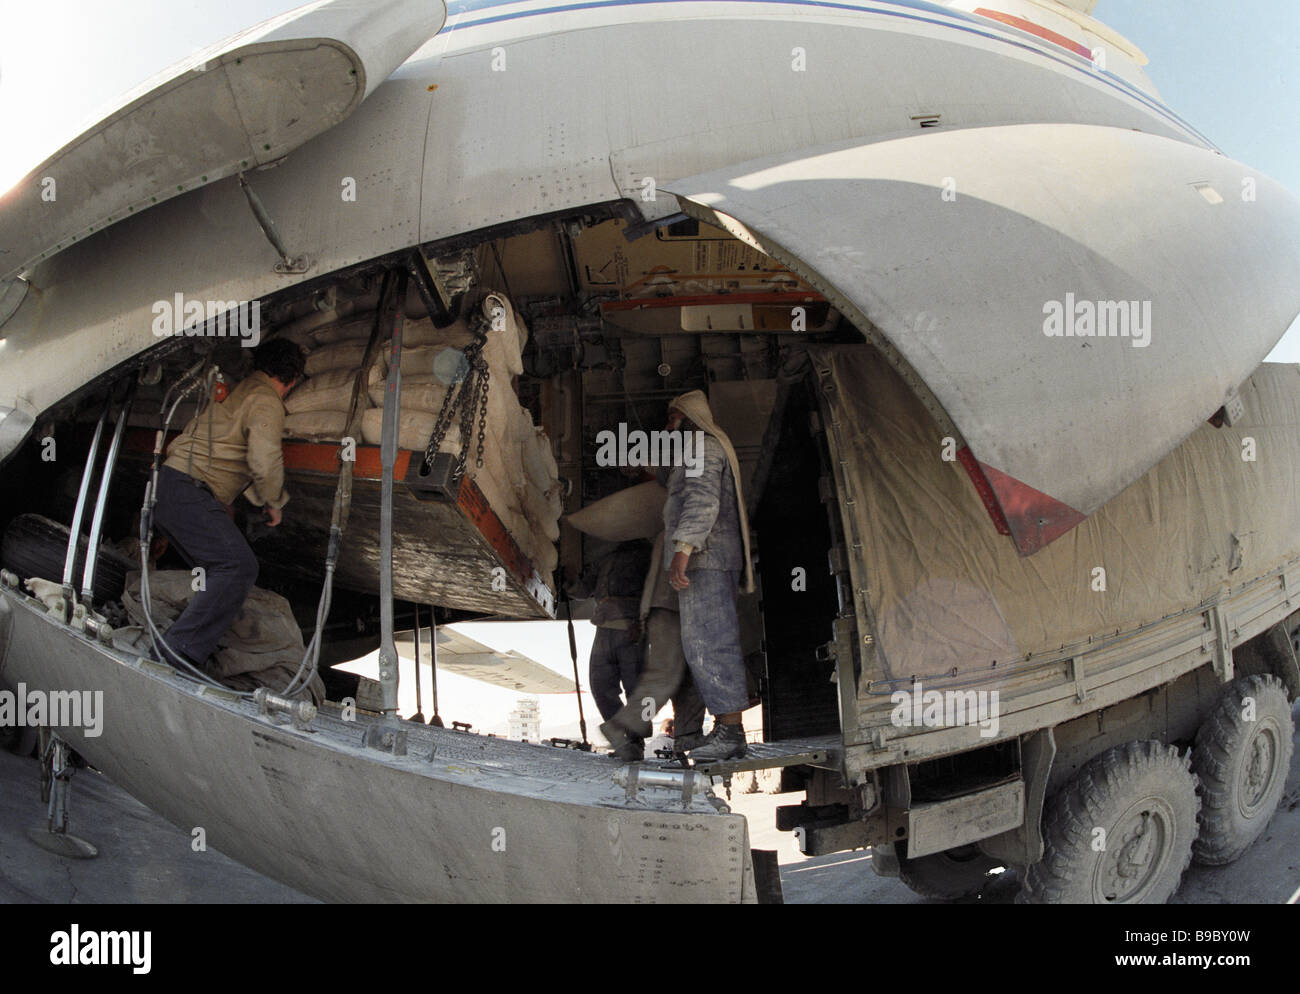 Soviet Afghanistan war - Page 6 Offloading-flour-from-a-soviet-aircraft-in-afghanistan-B9BY0W